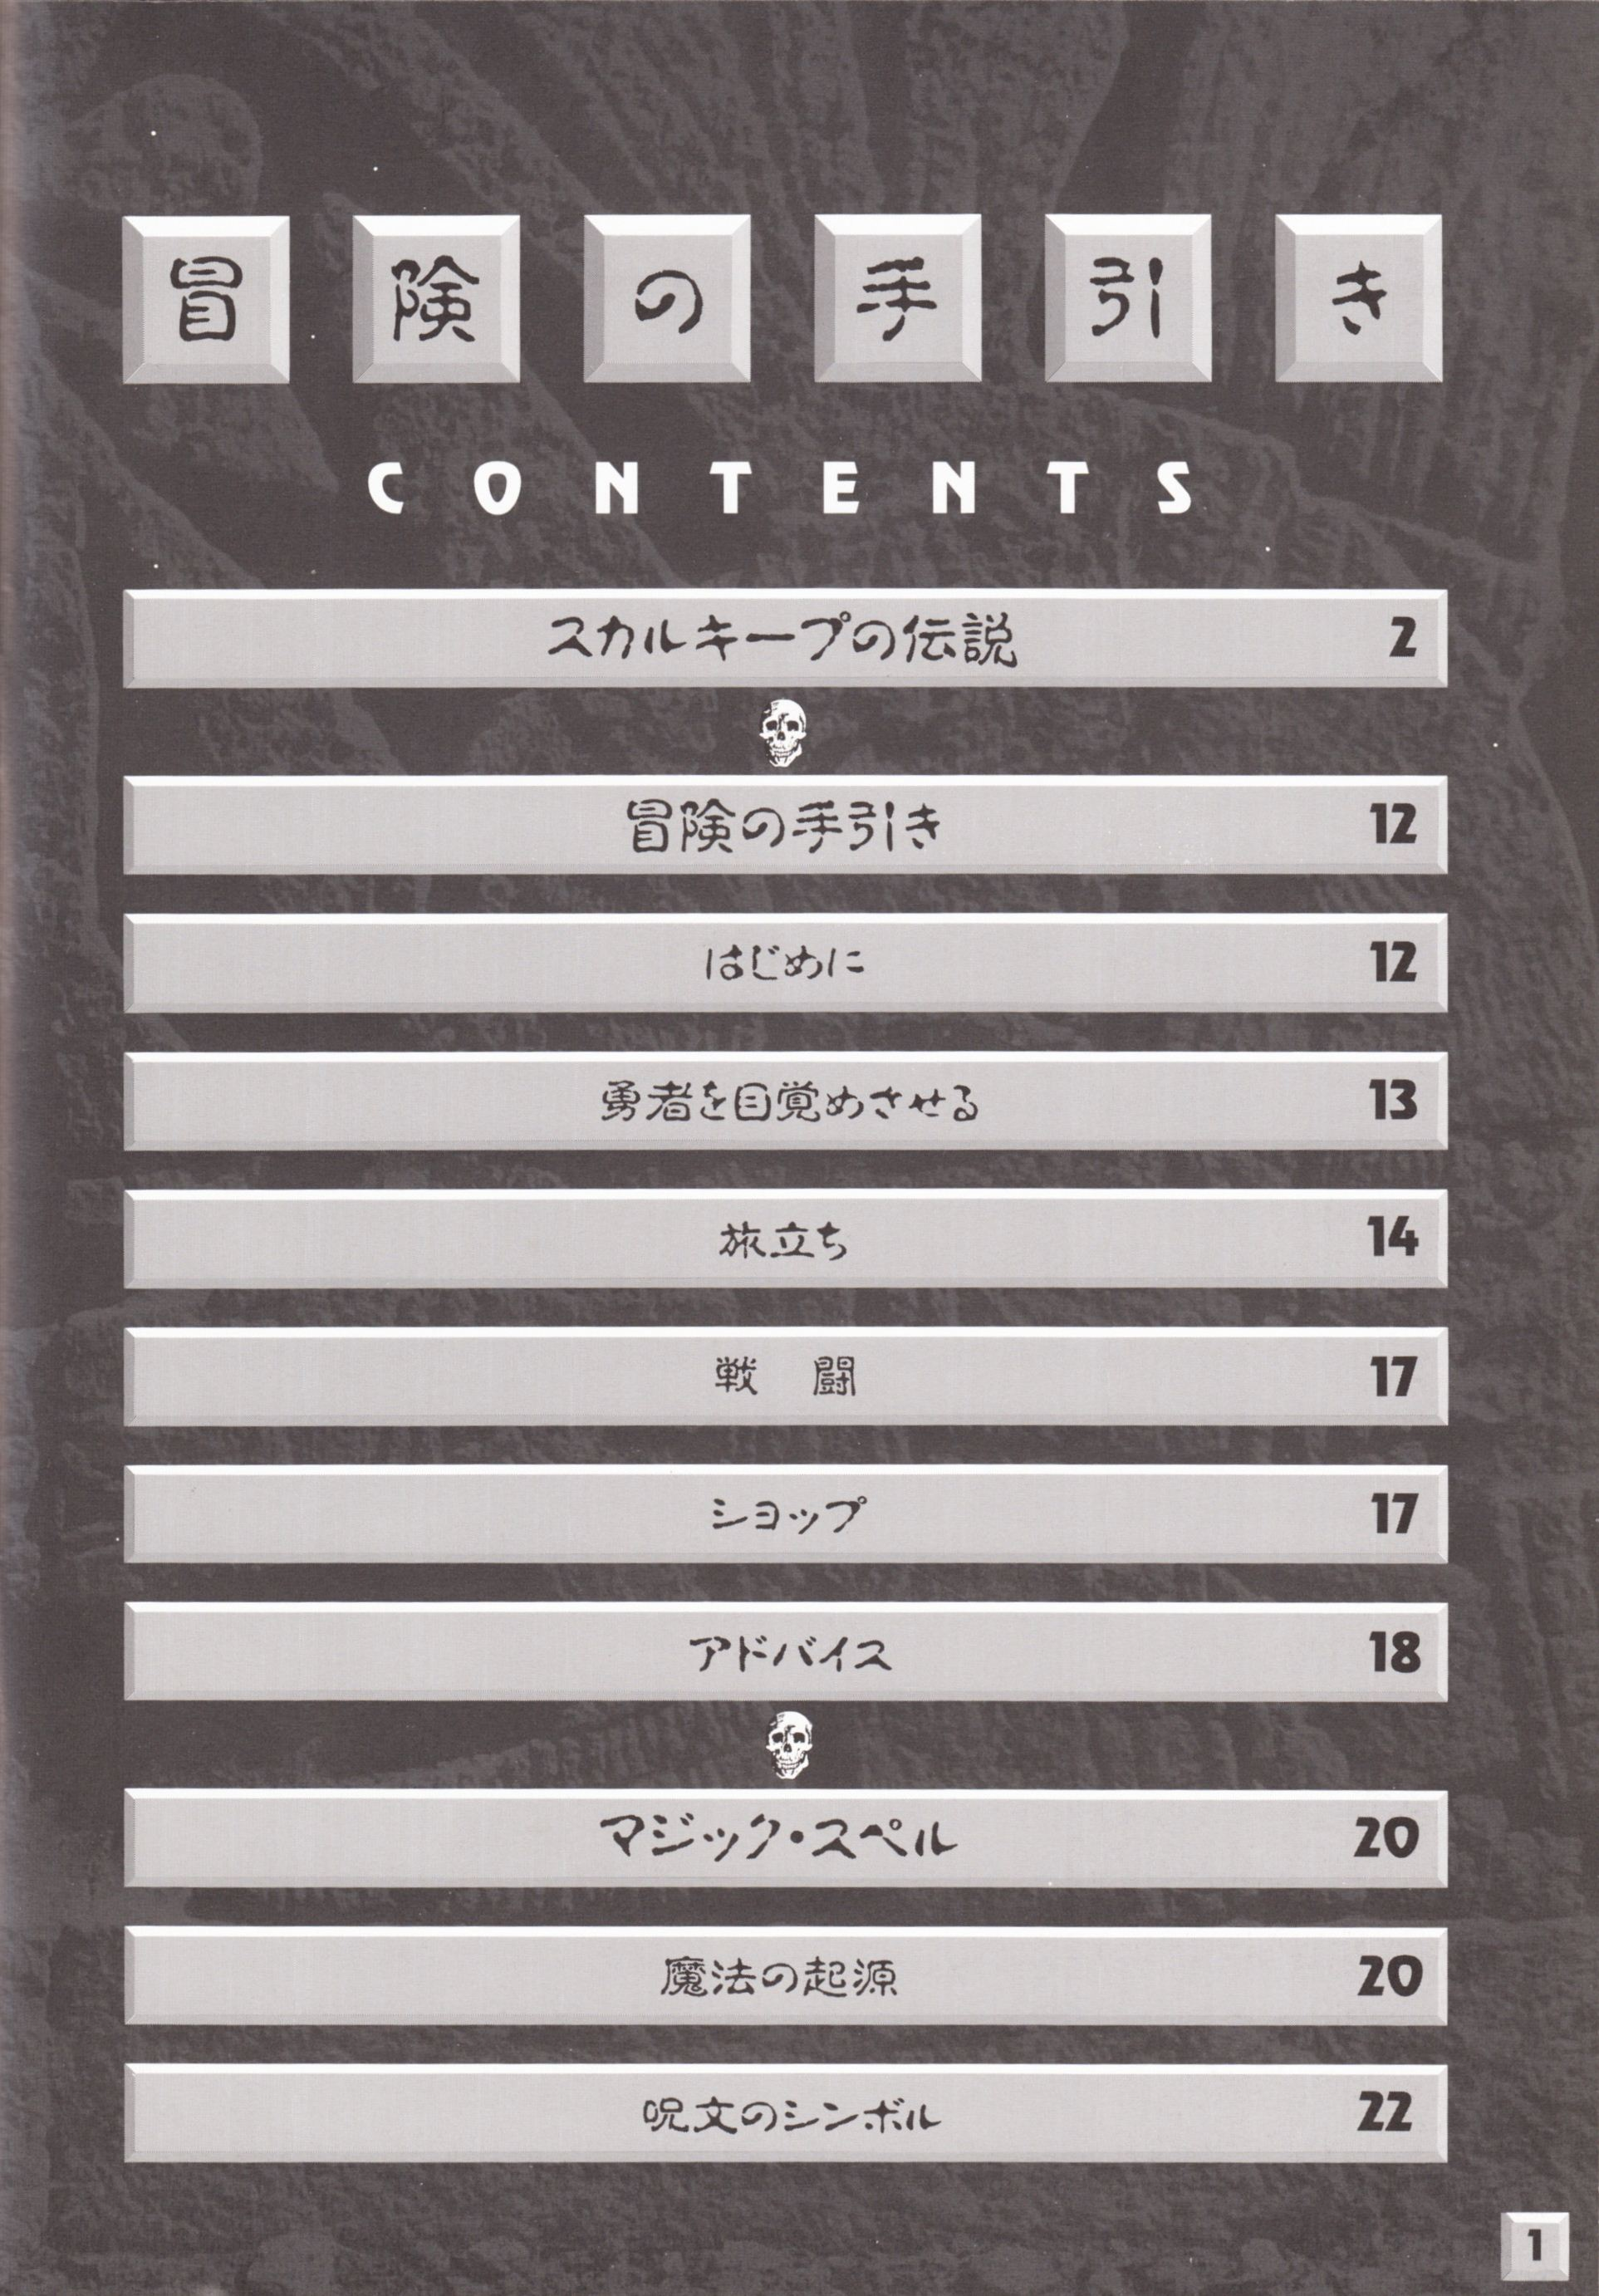 Game - Dungeon Master II - JP - PC-9801 - 3.5-inch - The Guidance Of Adventure - Page 003 - Scan